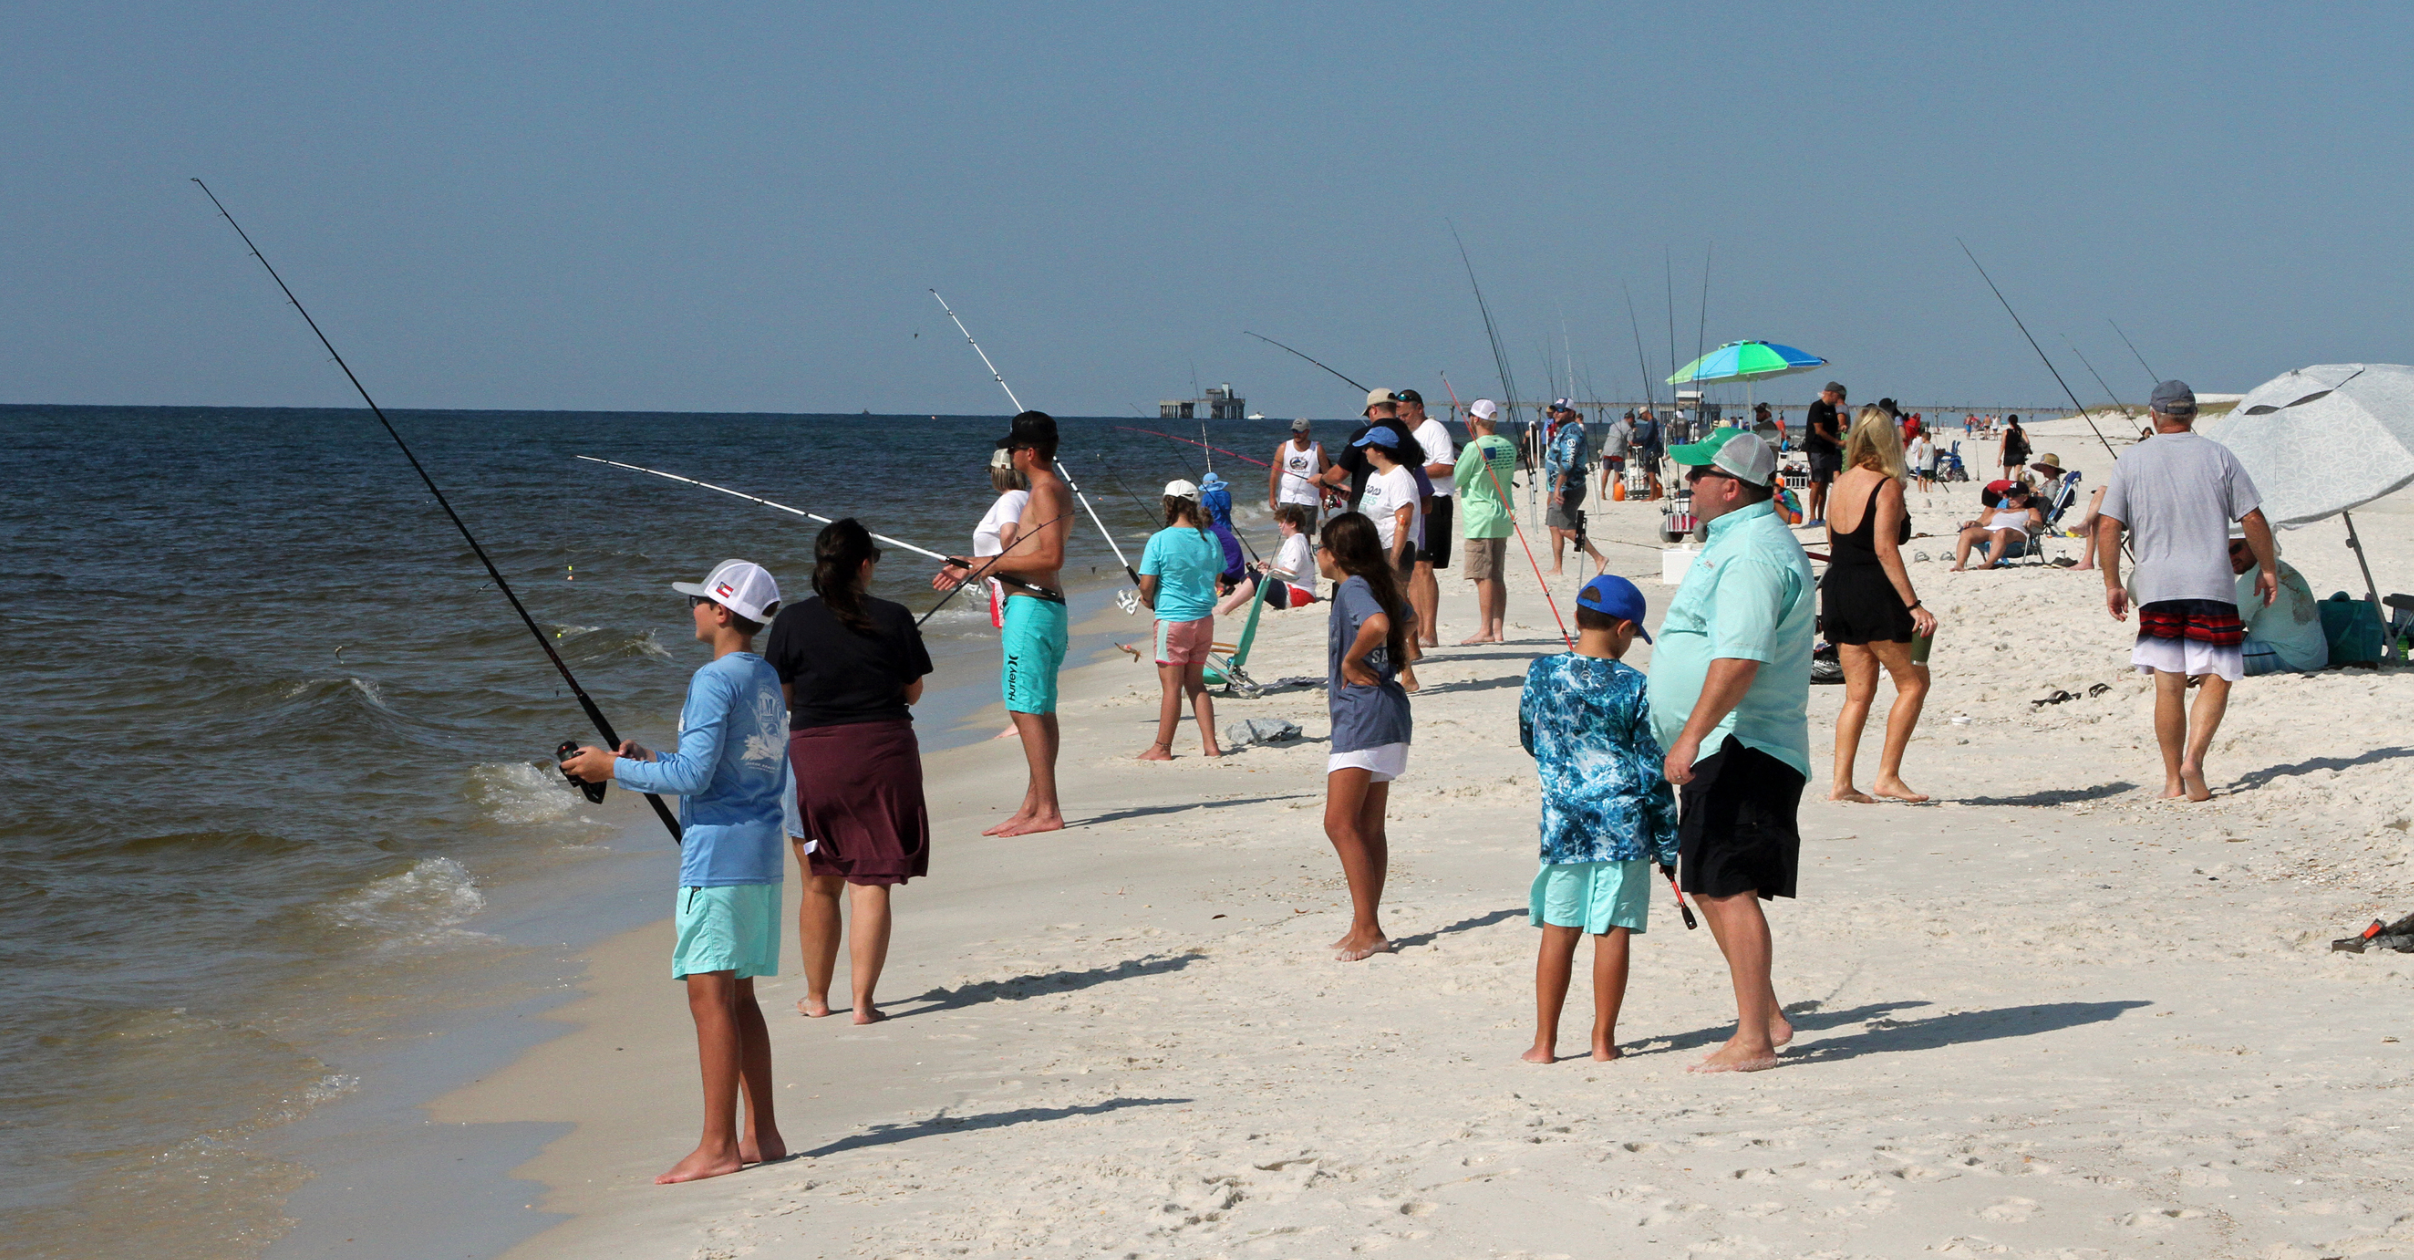 Kids learn to surf fish at Gulf State Park